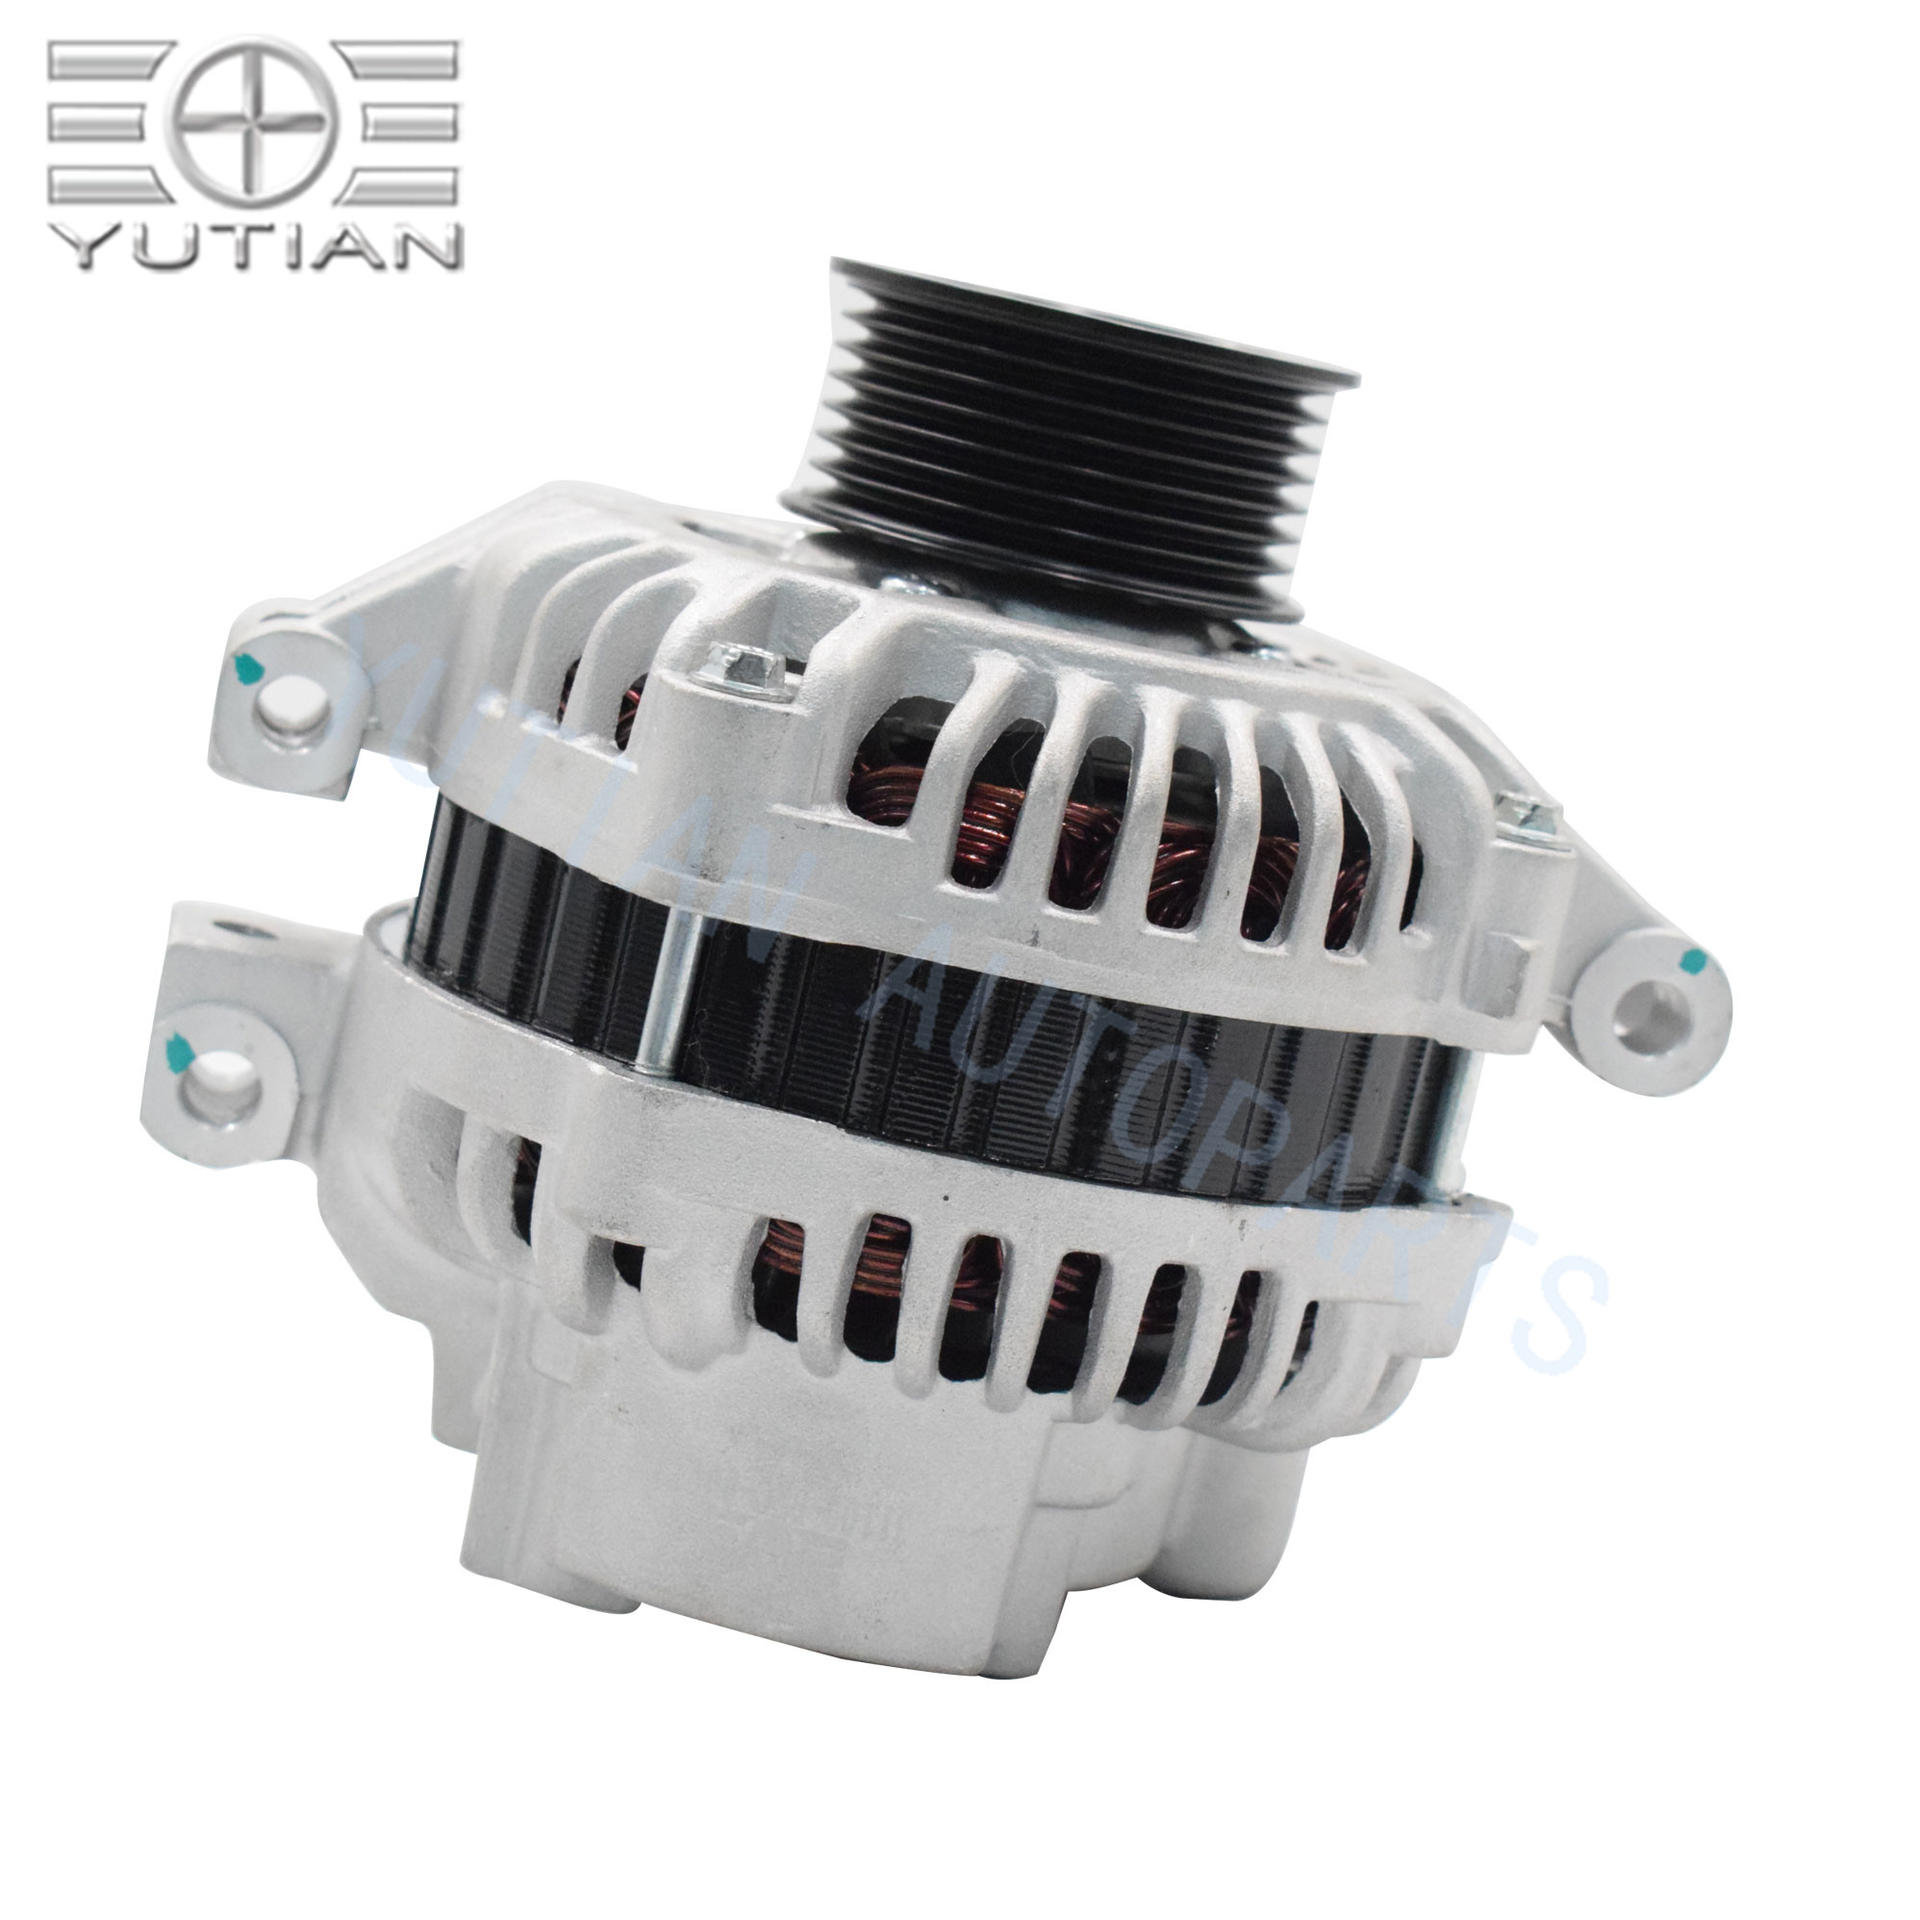 For Honda Alternator CR-V 2002-2006 2.0L /2.4L Car generator 14V 90A 7PK OEM 31100-PNC-004